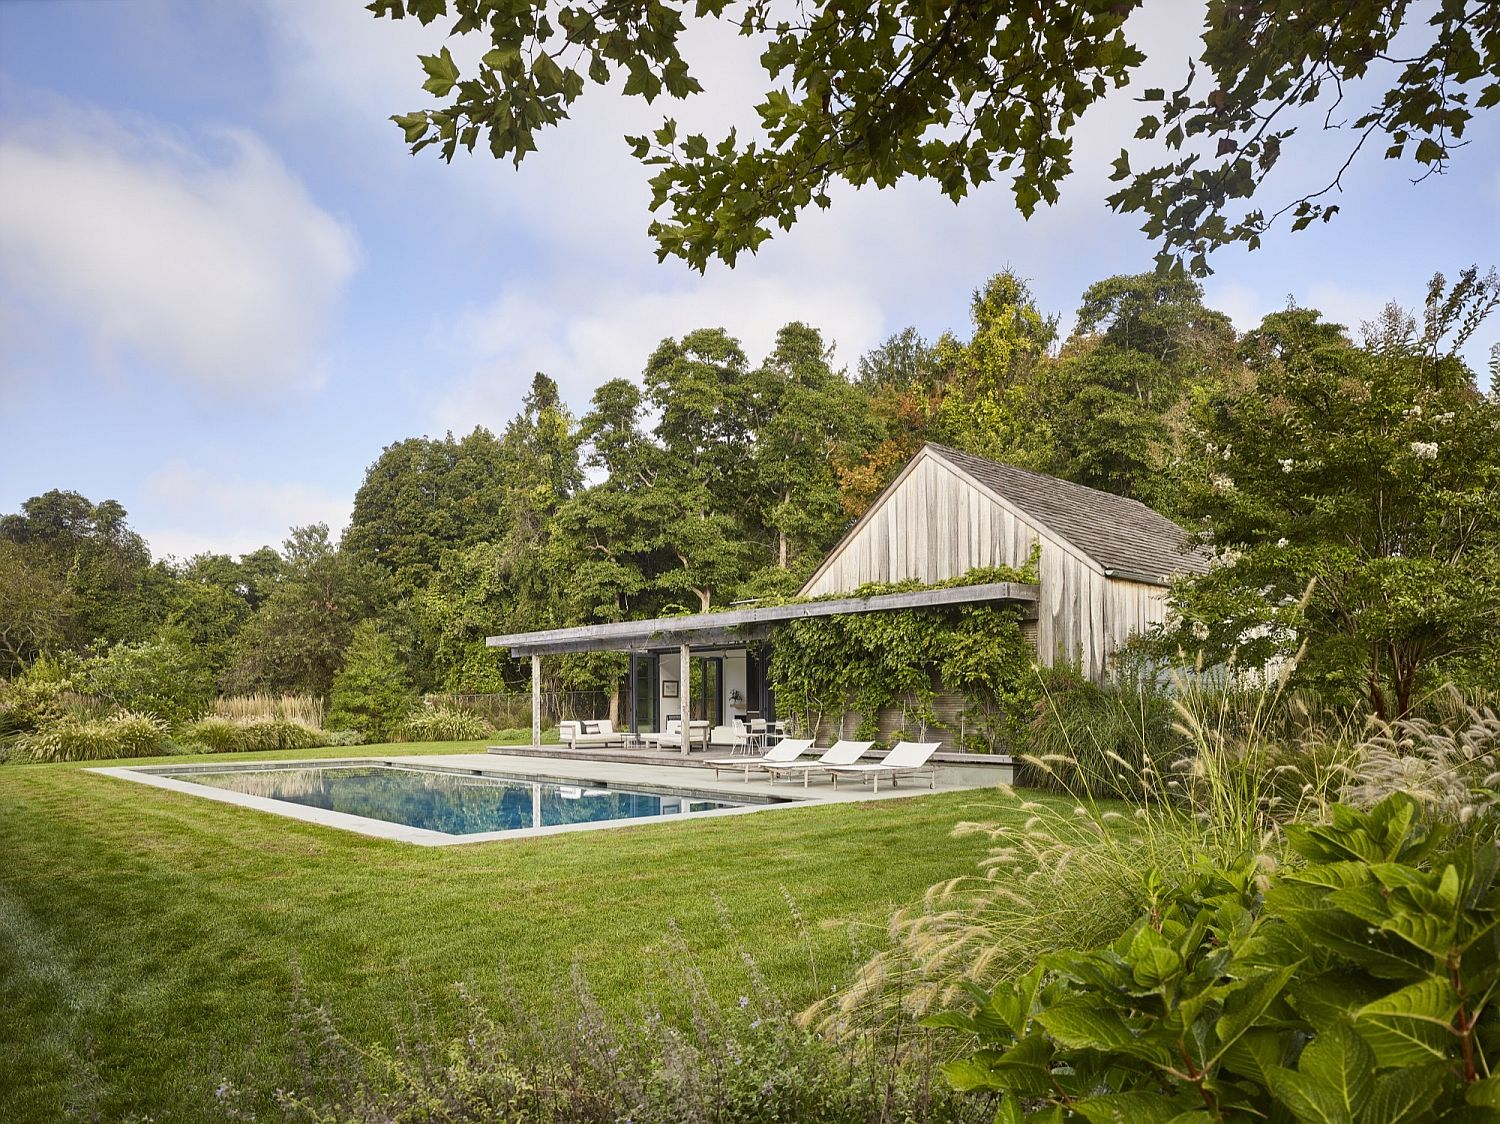 Greenery around the house adds to the ambiance of the pool house